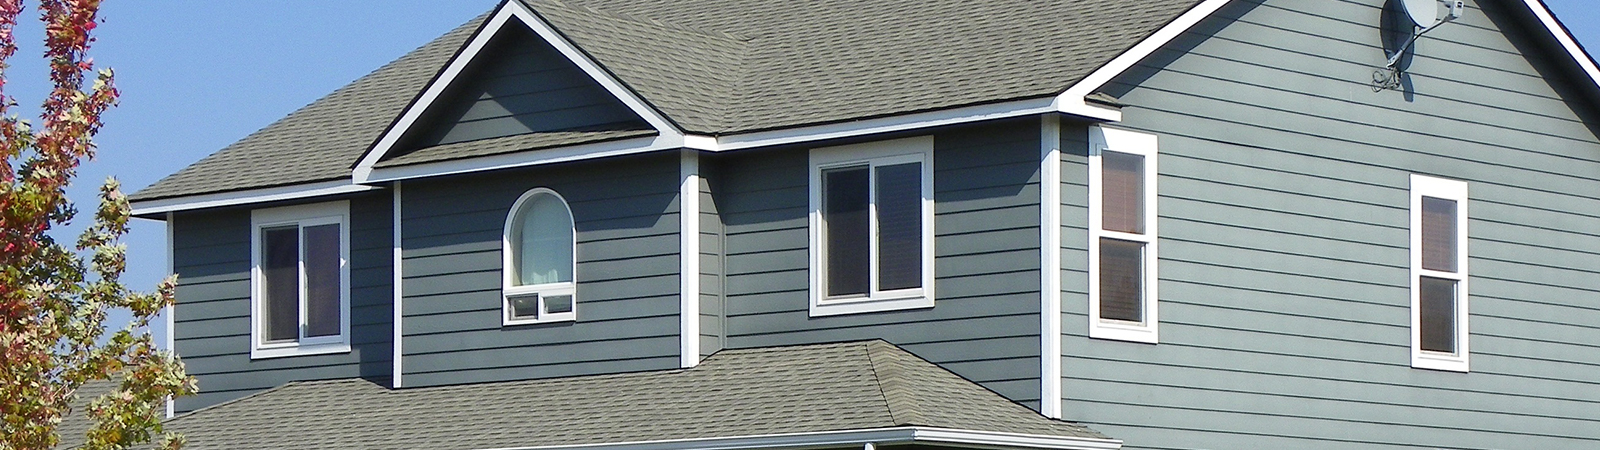 Residential roof in Chashassen, MN